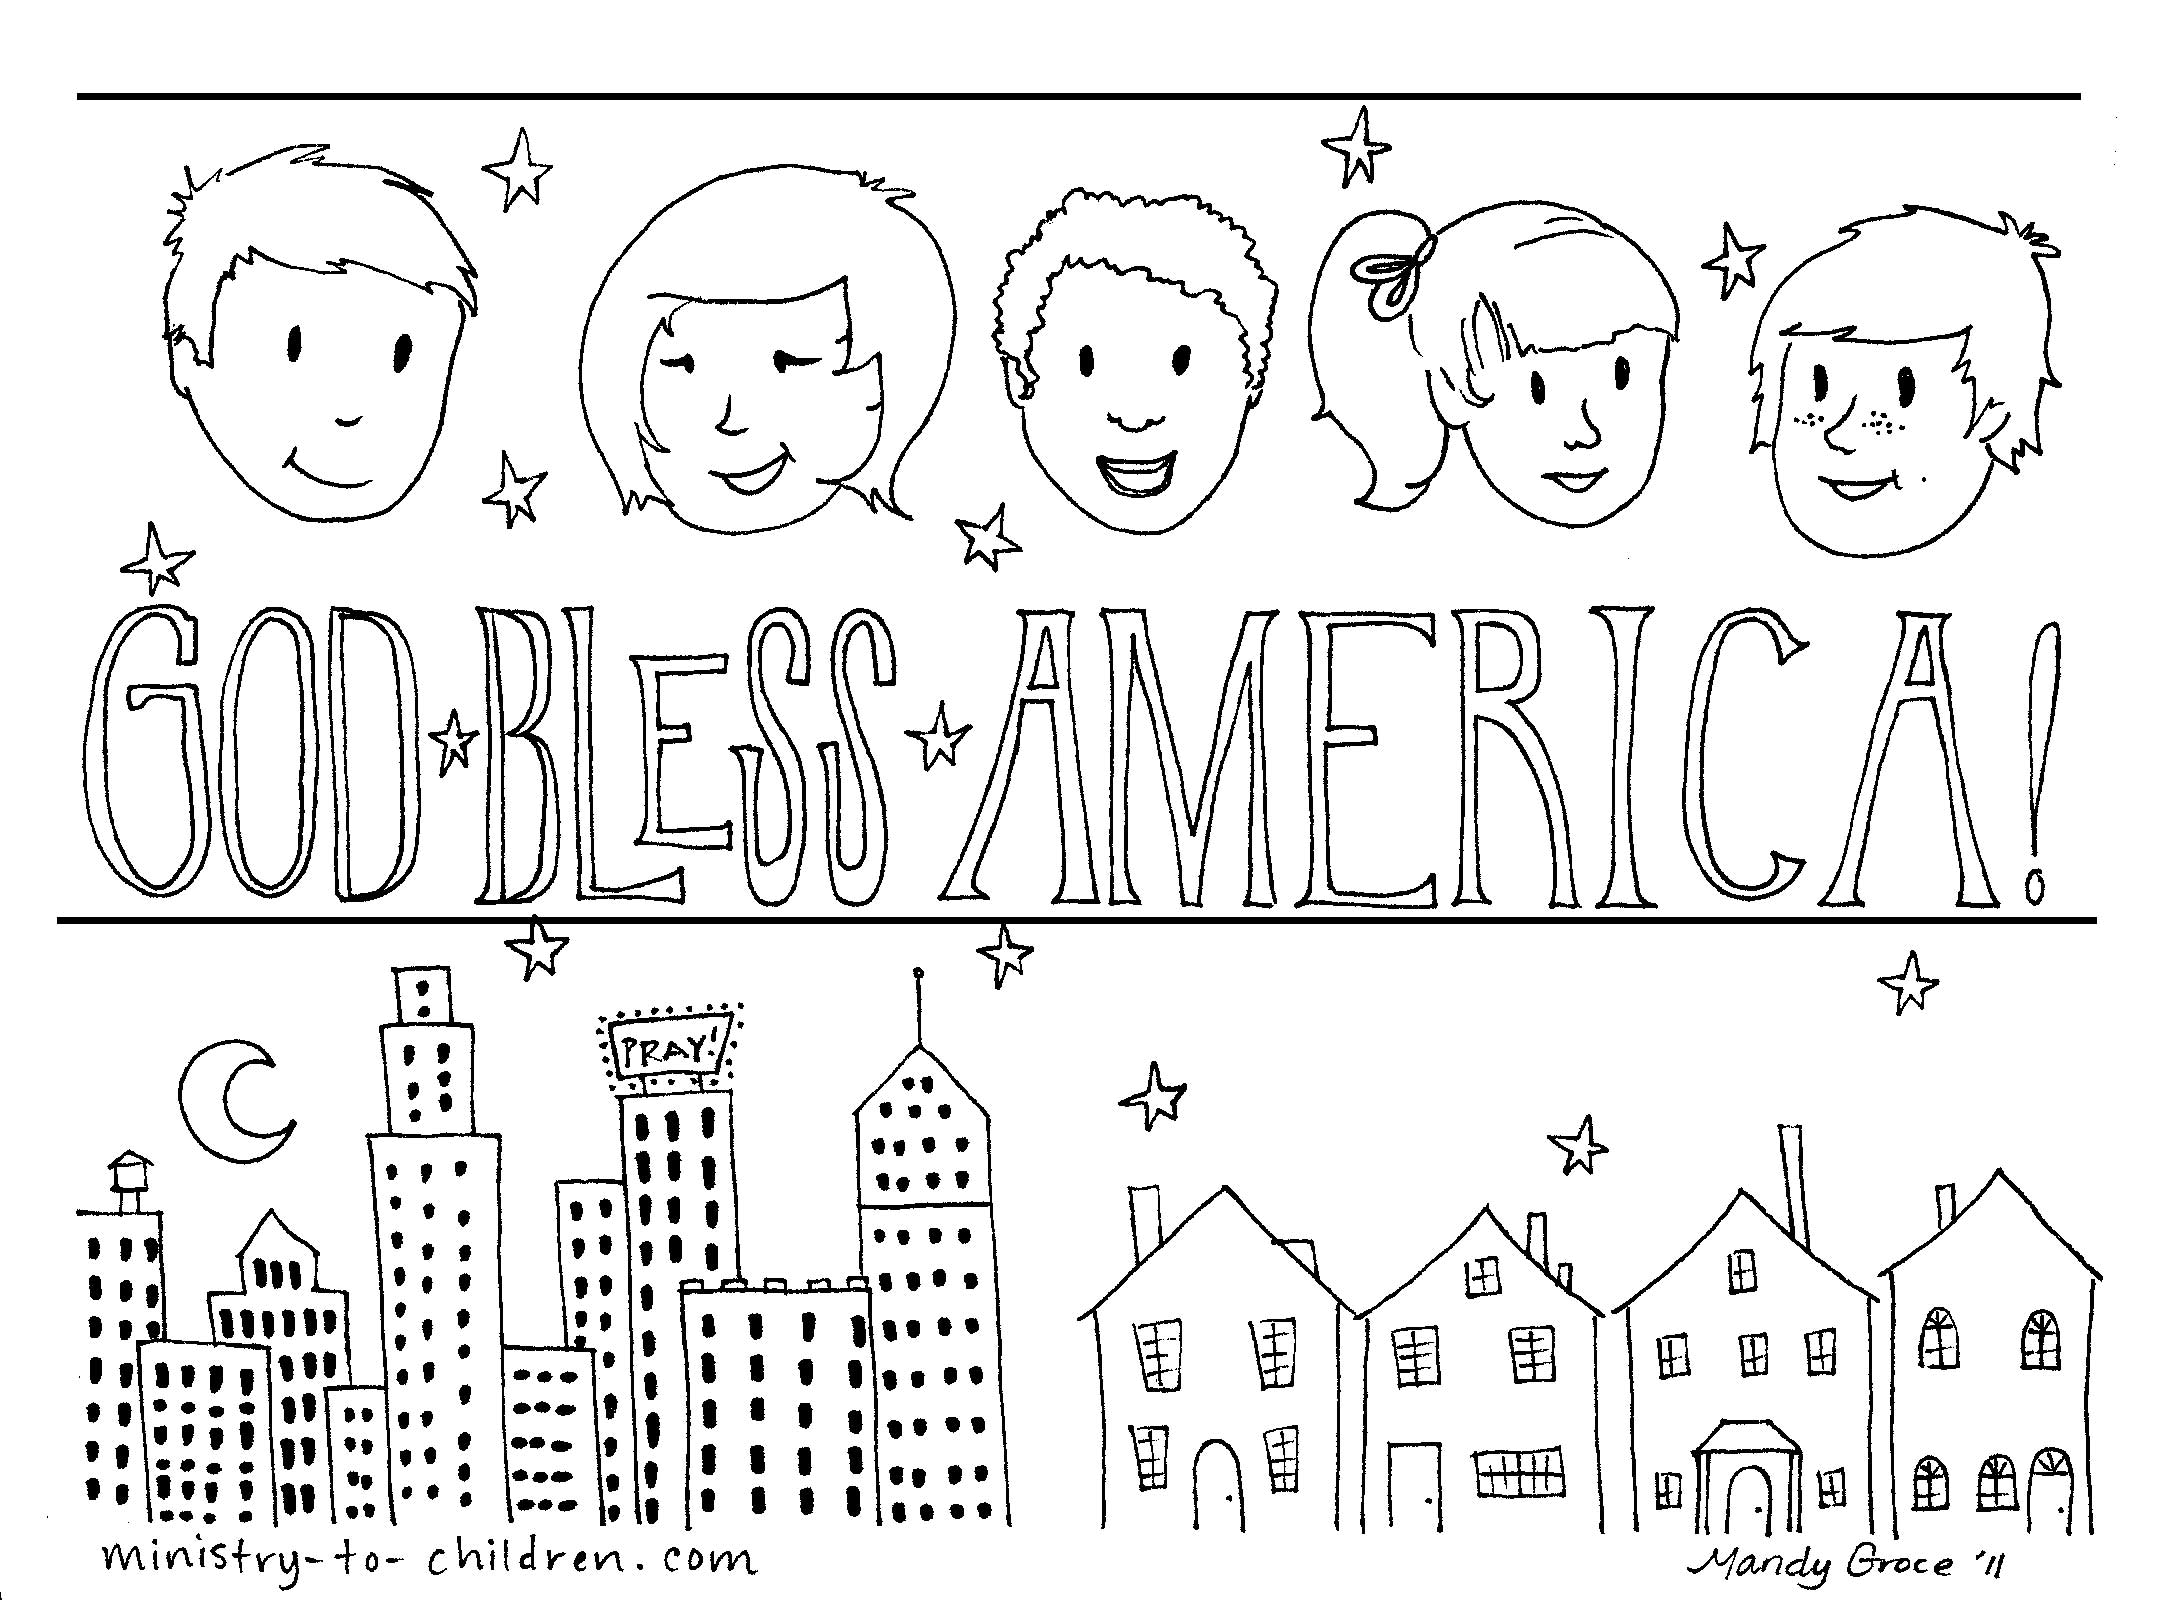 9 11 Coloring Pages God Bless September 11 Coloring Pages 11th Rizapbeauty